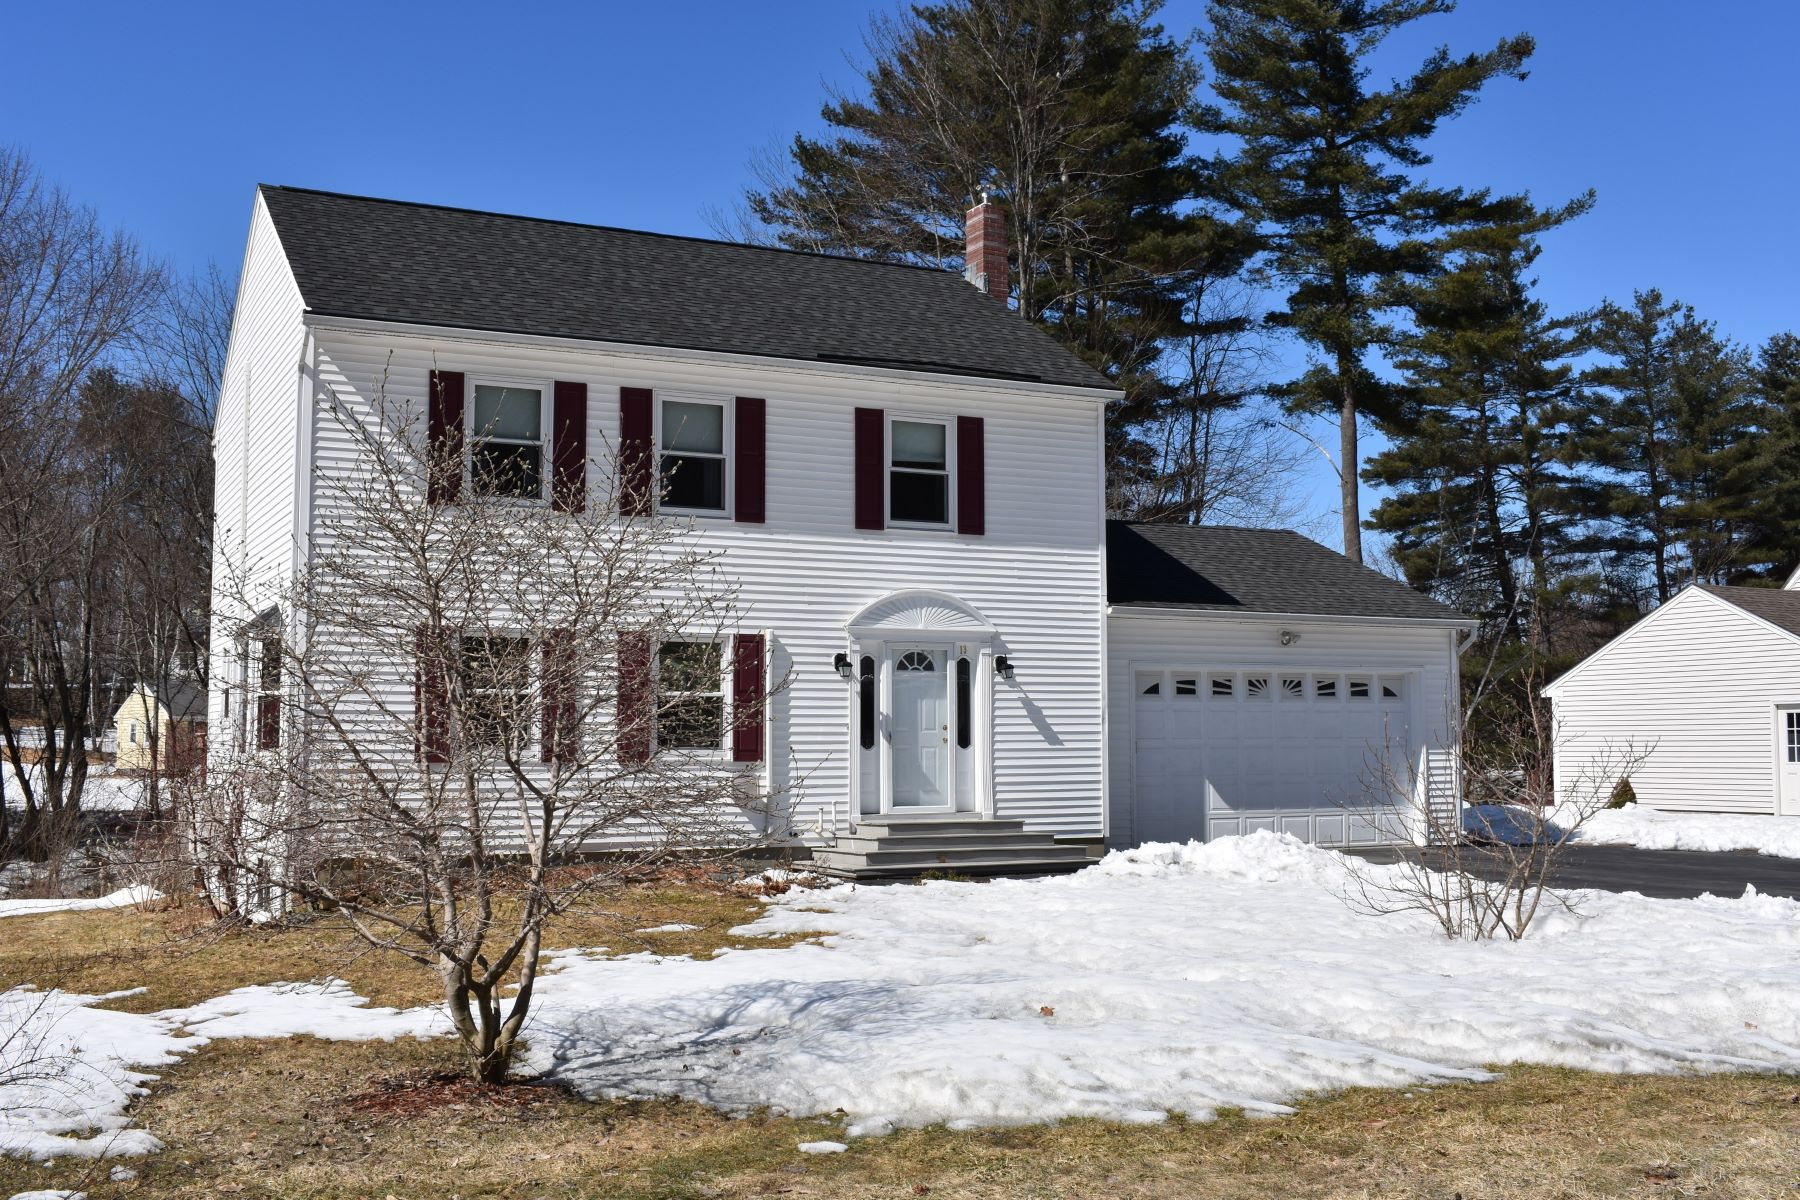 Single Family Home for Sale at 13 Cottage Circle, Lebanon 13 Cottage Cir Lebanon, New Hampshire 03784 United States